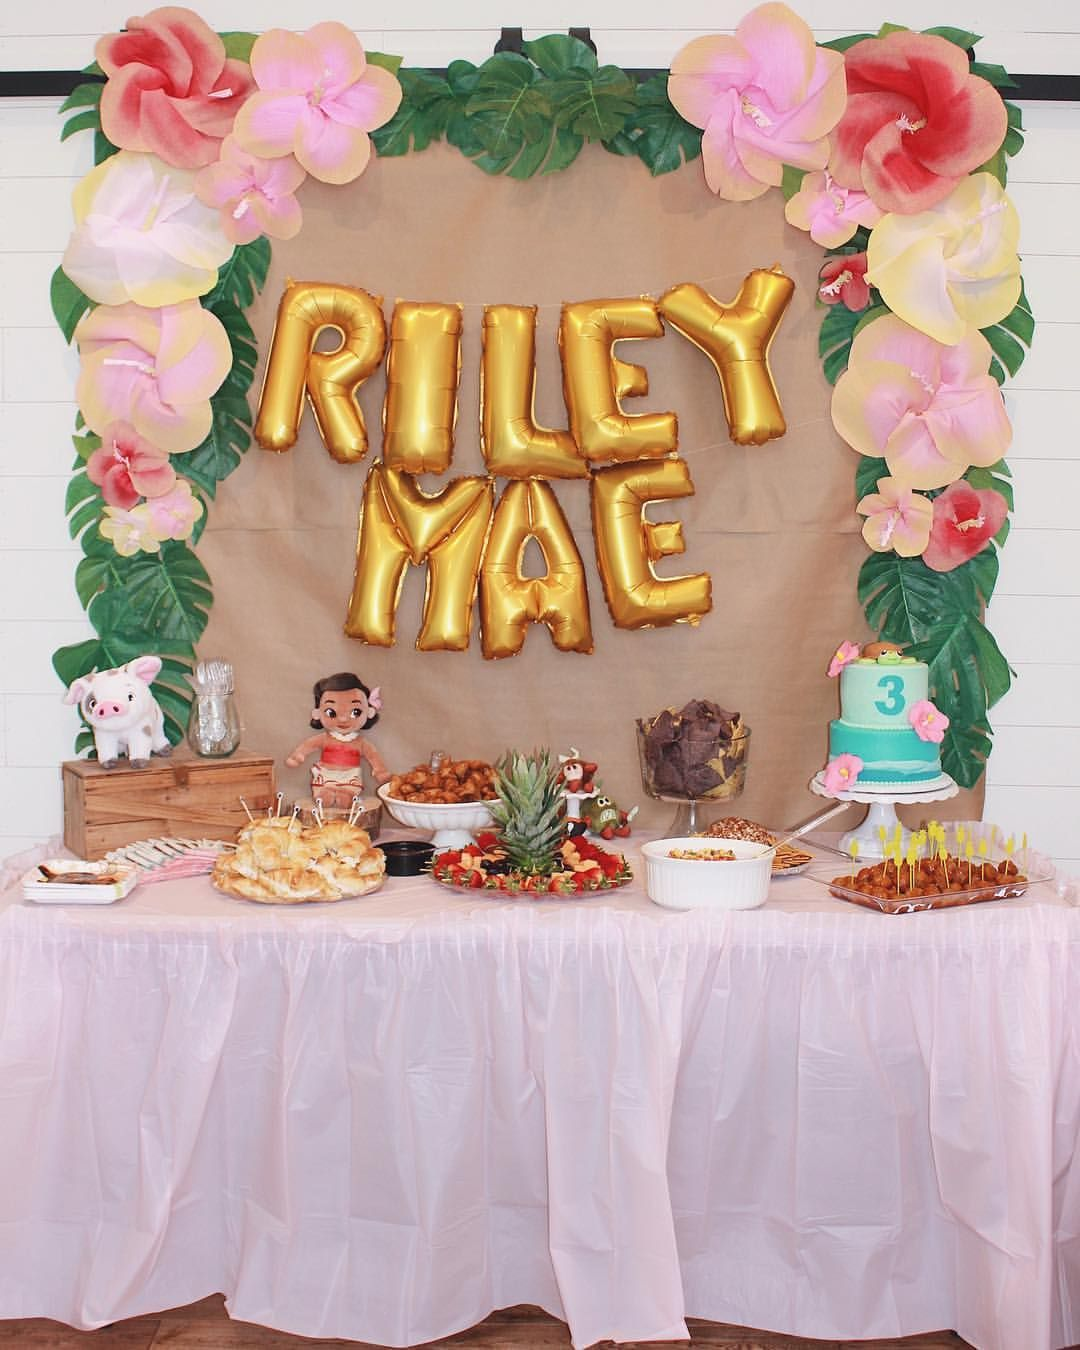 BLOGGED Todays My Babys 4th Birthday And I Cant Believe Were Already Here Lasts Years Party This Is A Pic From Her Moana